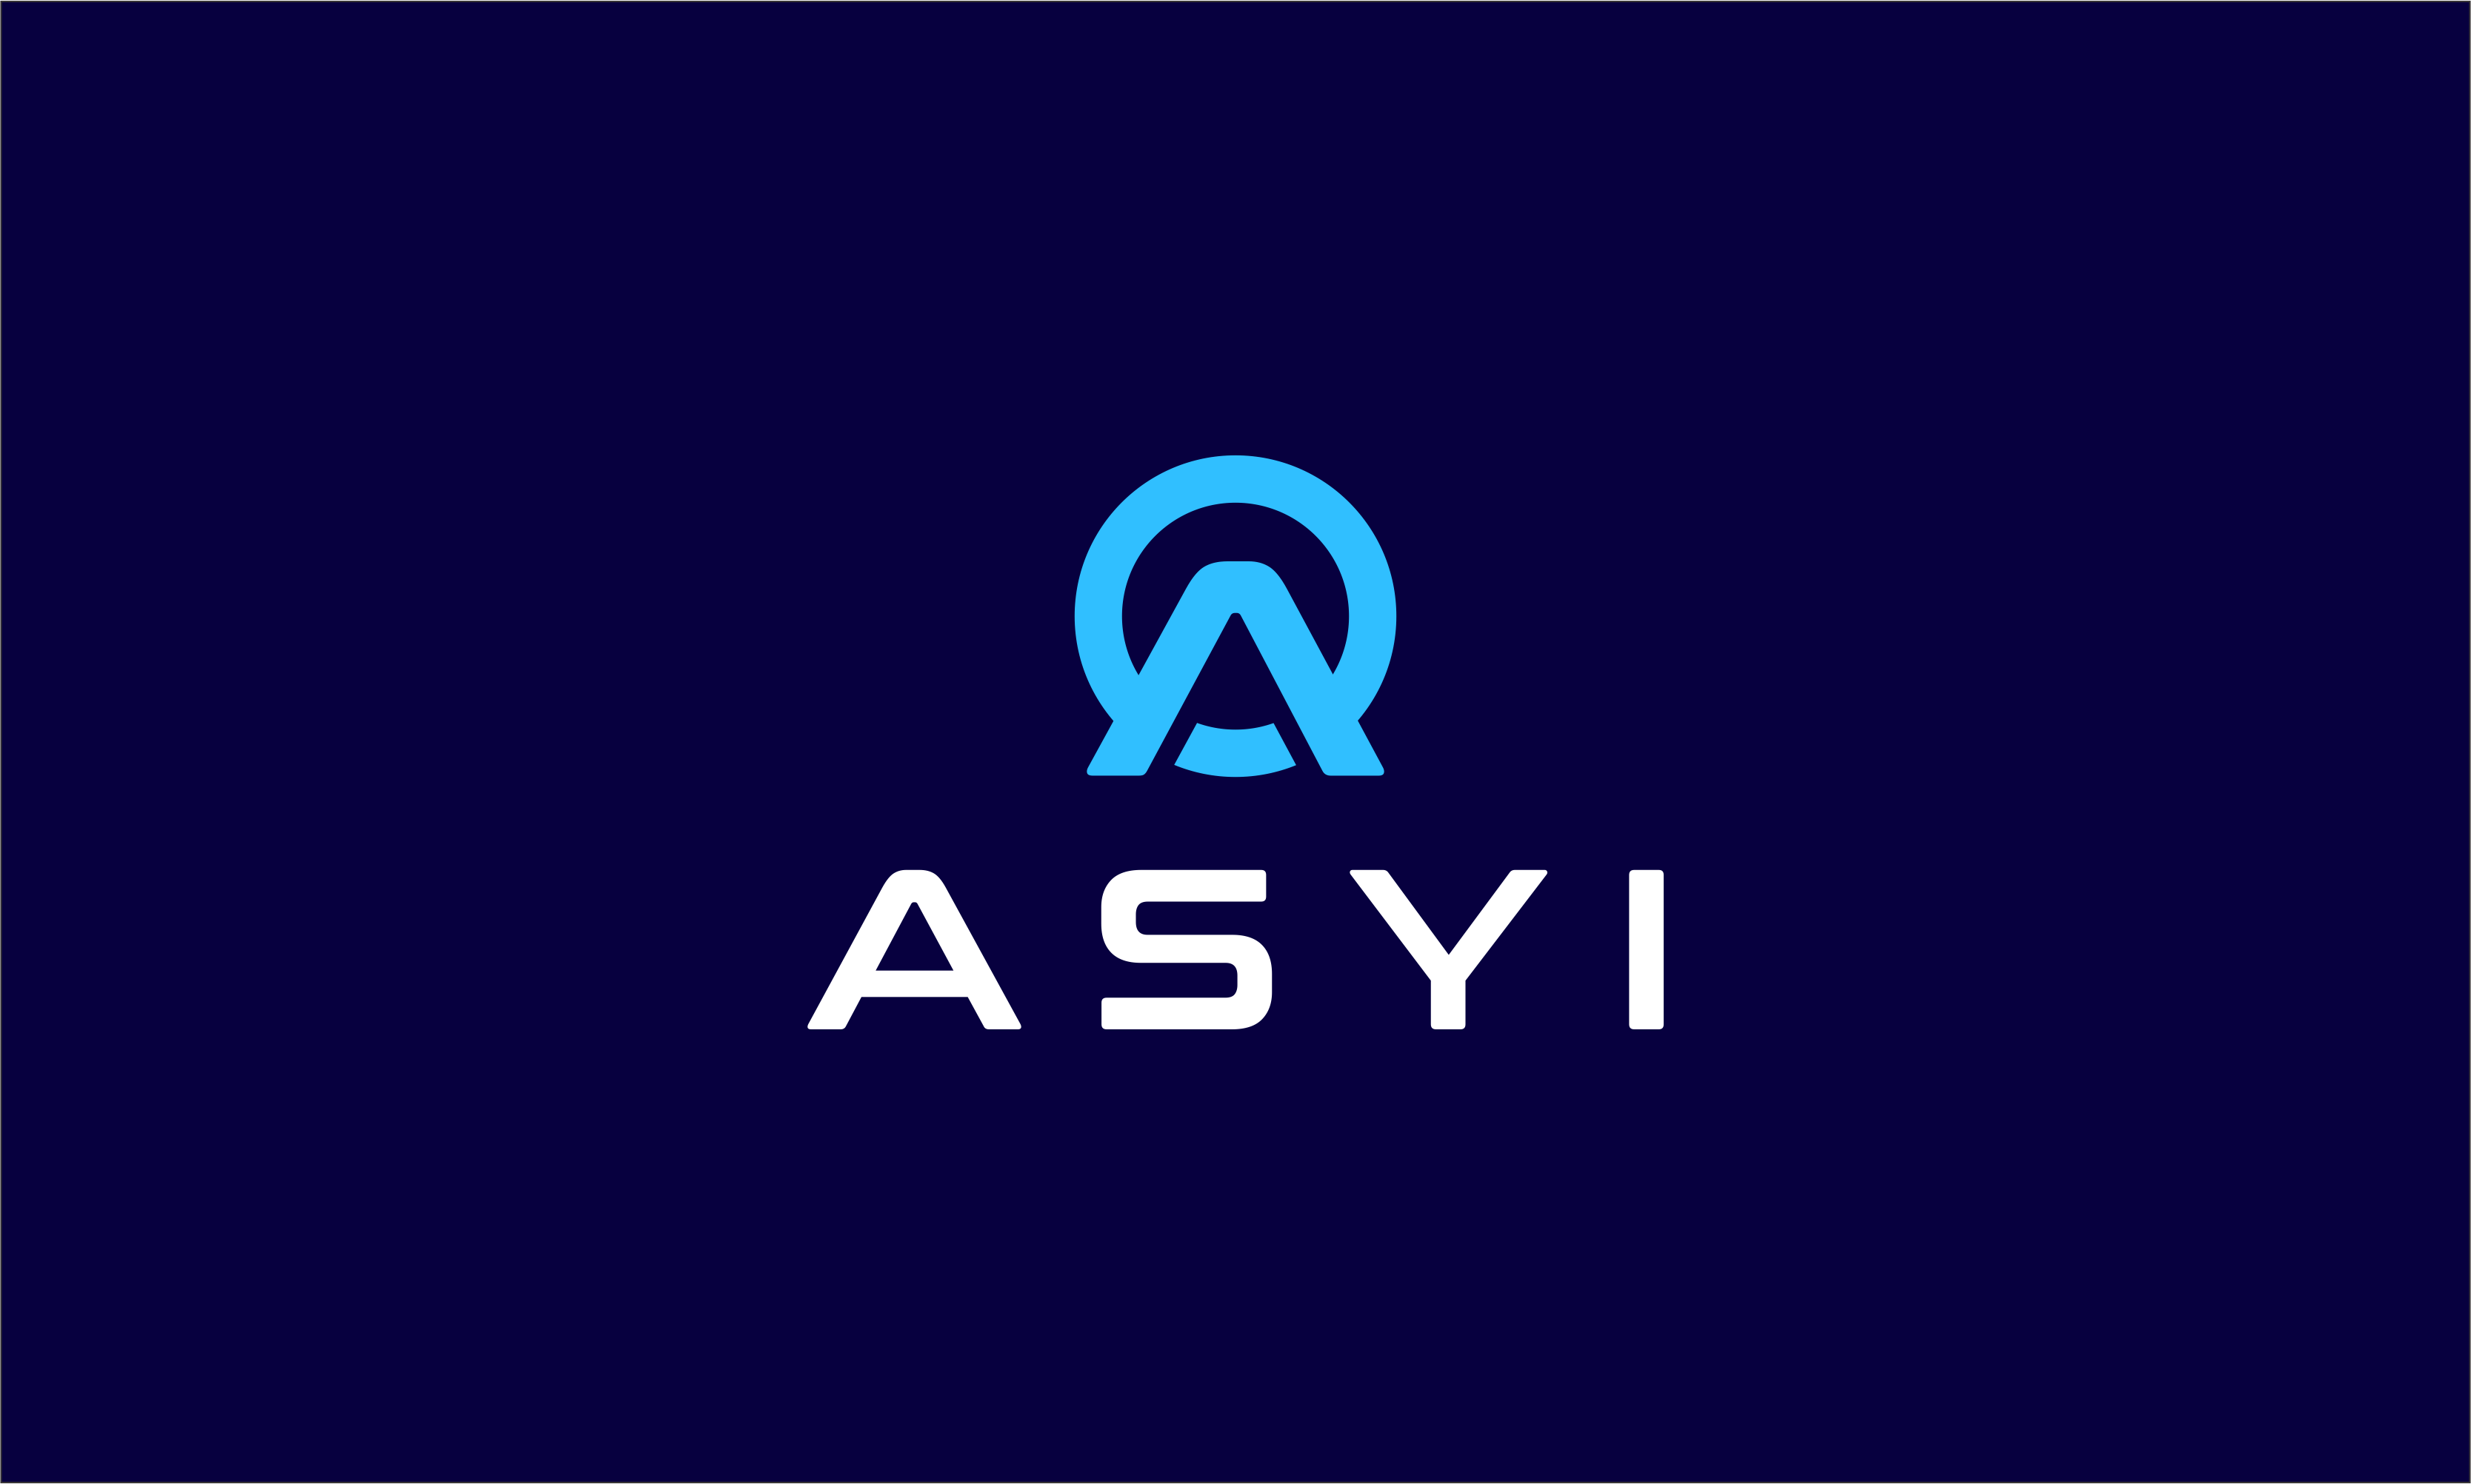 Asyi - Driven product name for sale